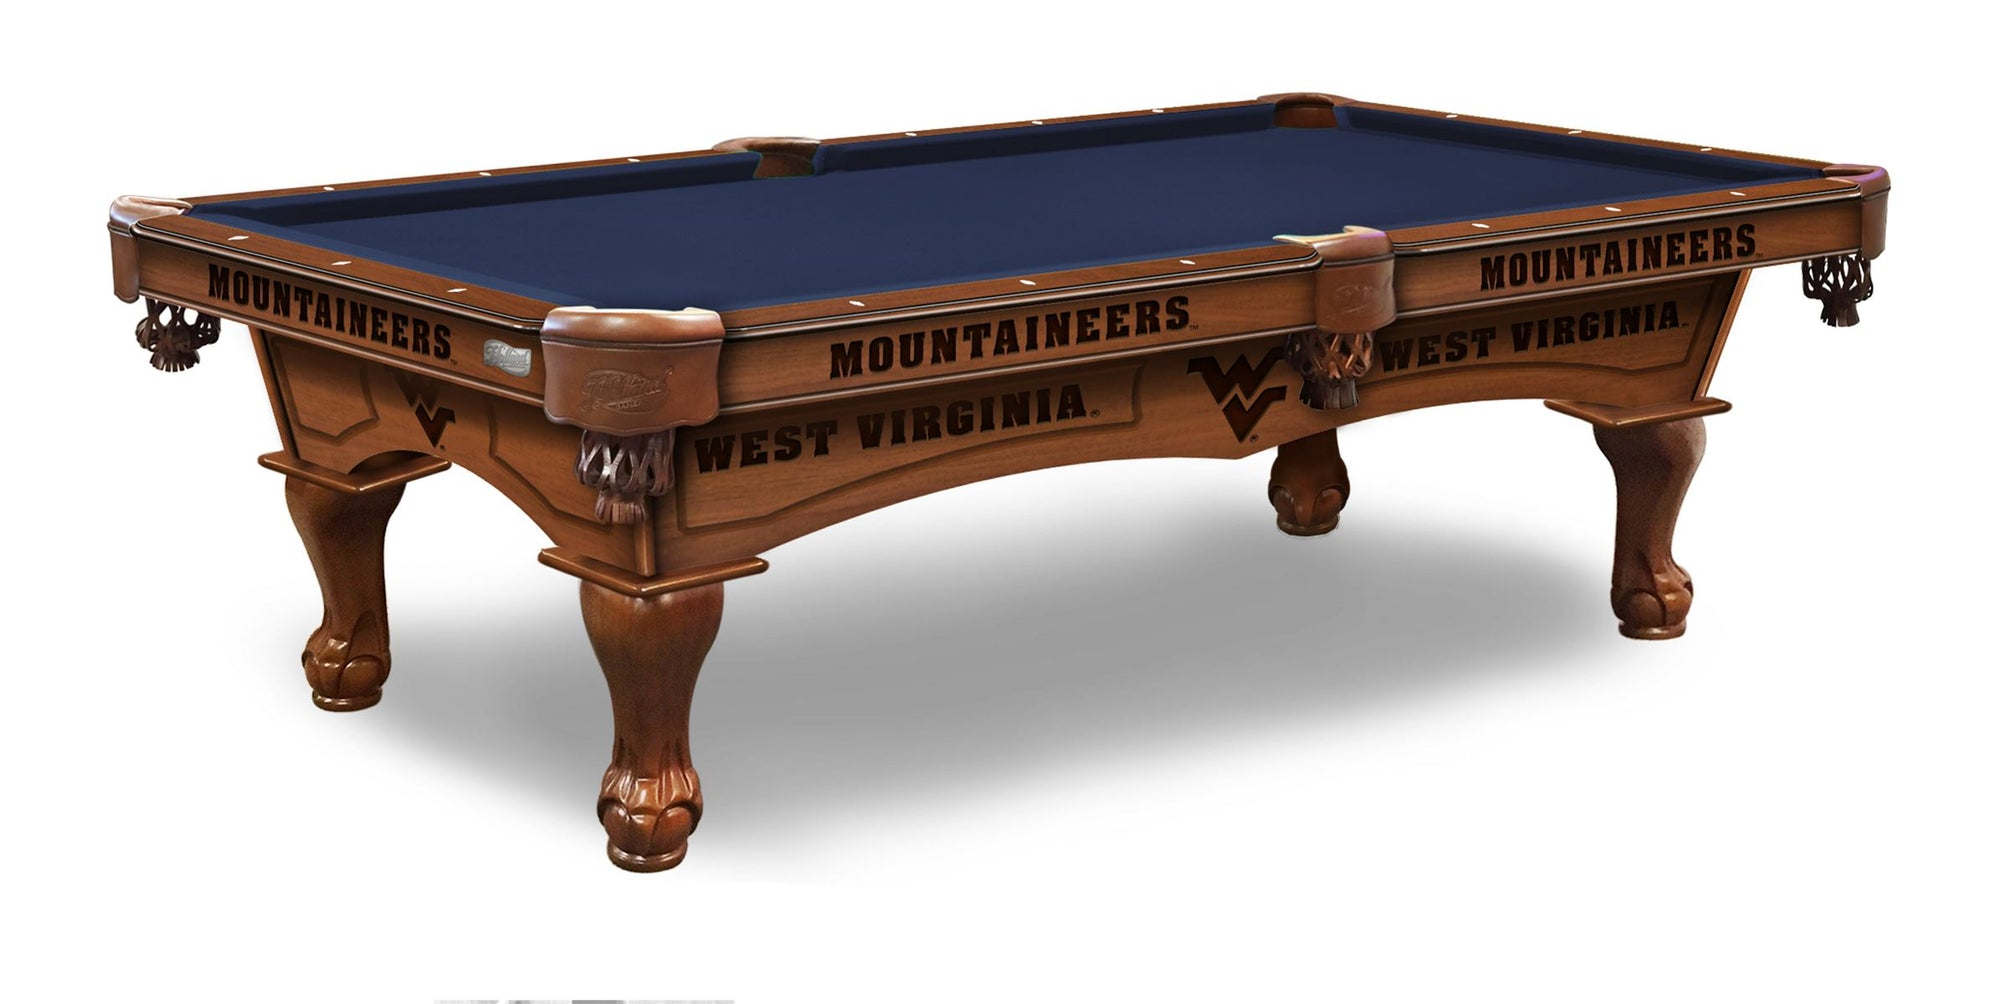 West Virginia University Pool Table with Plain Cloth